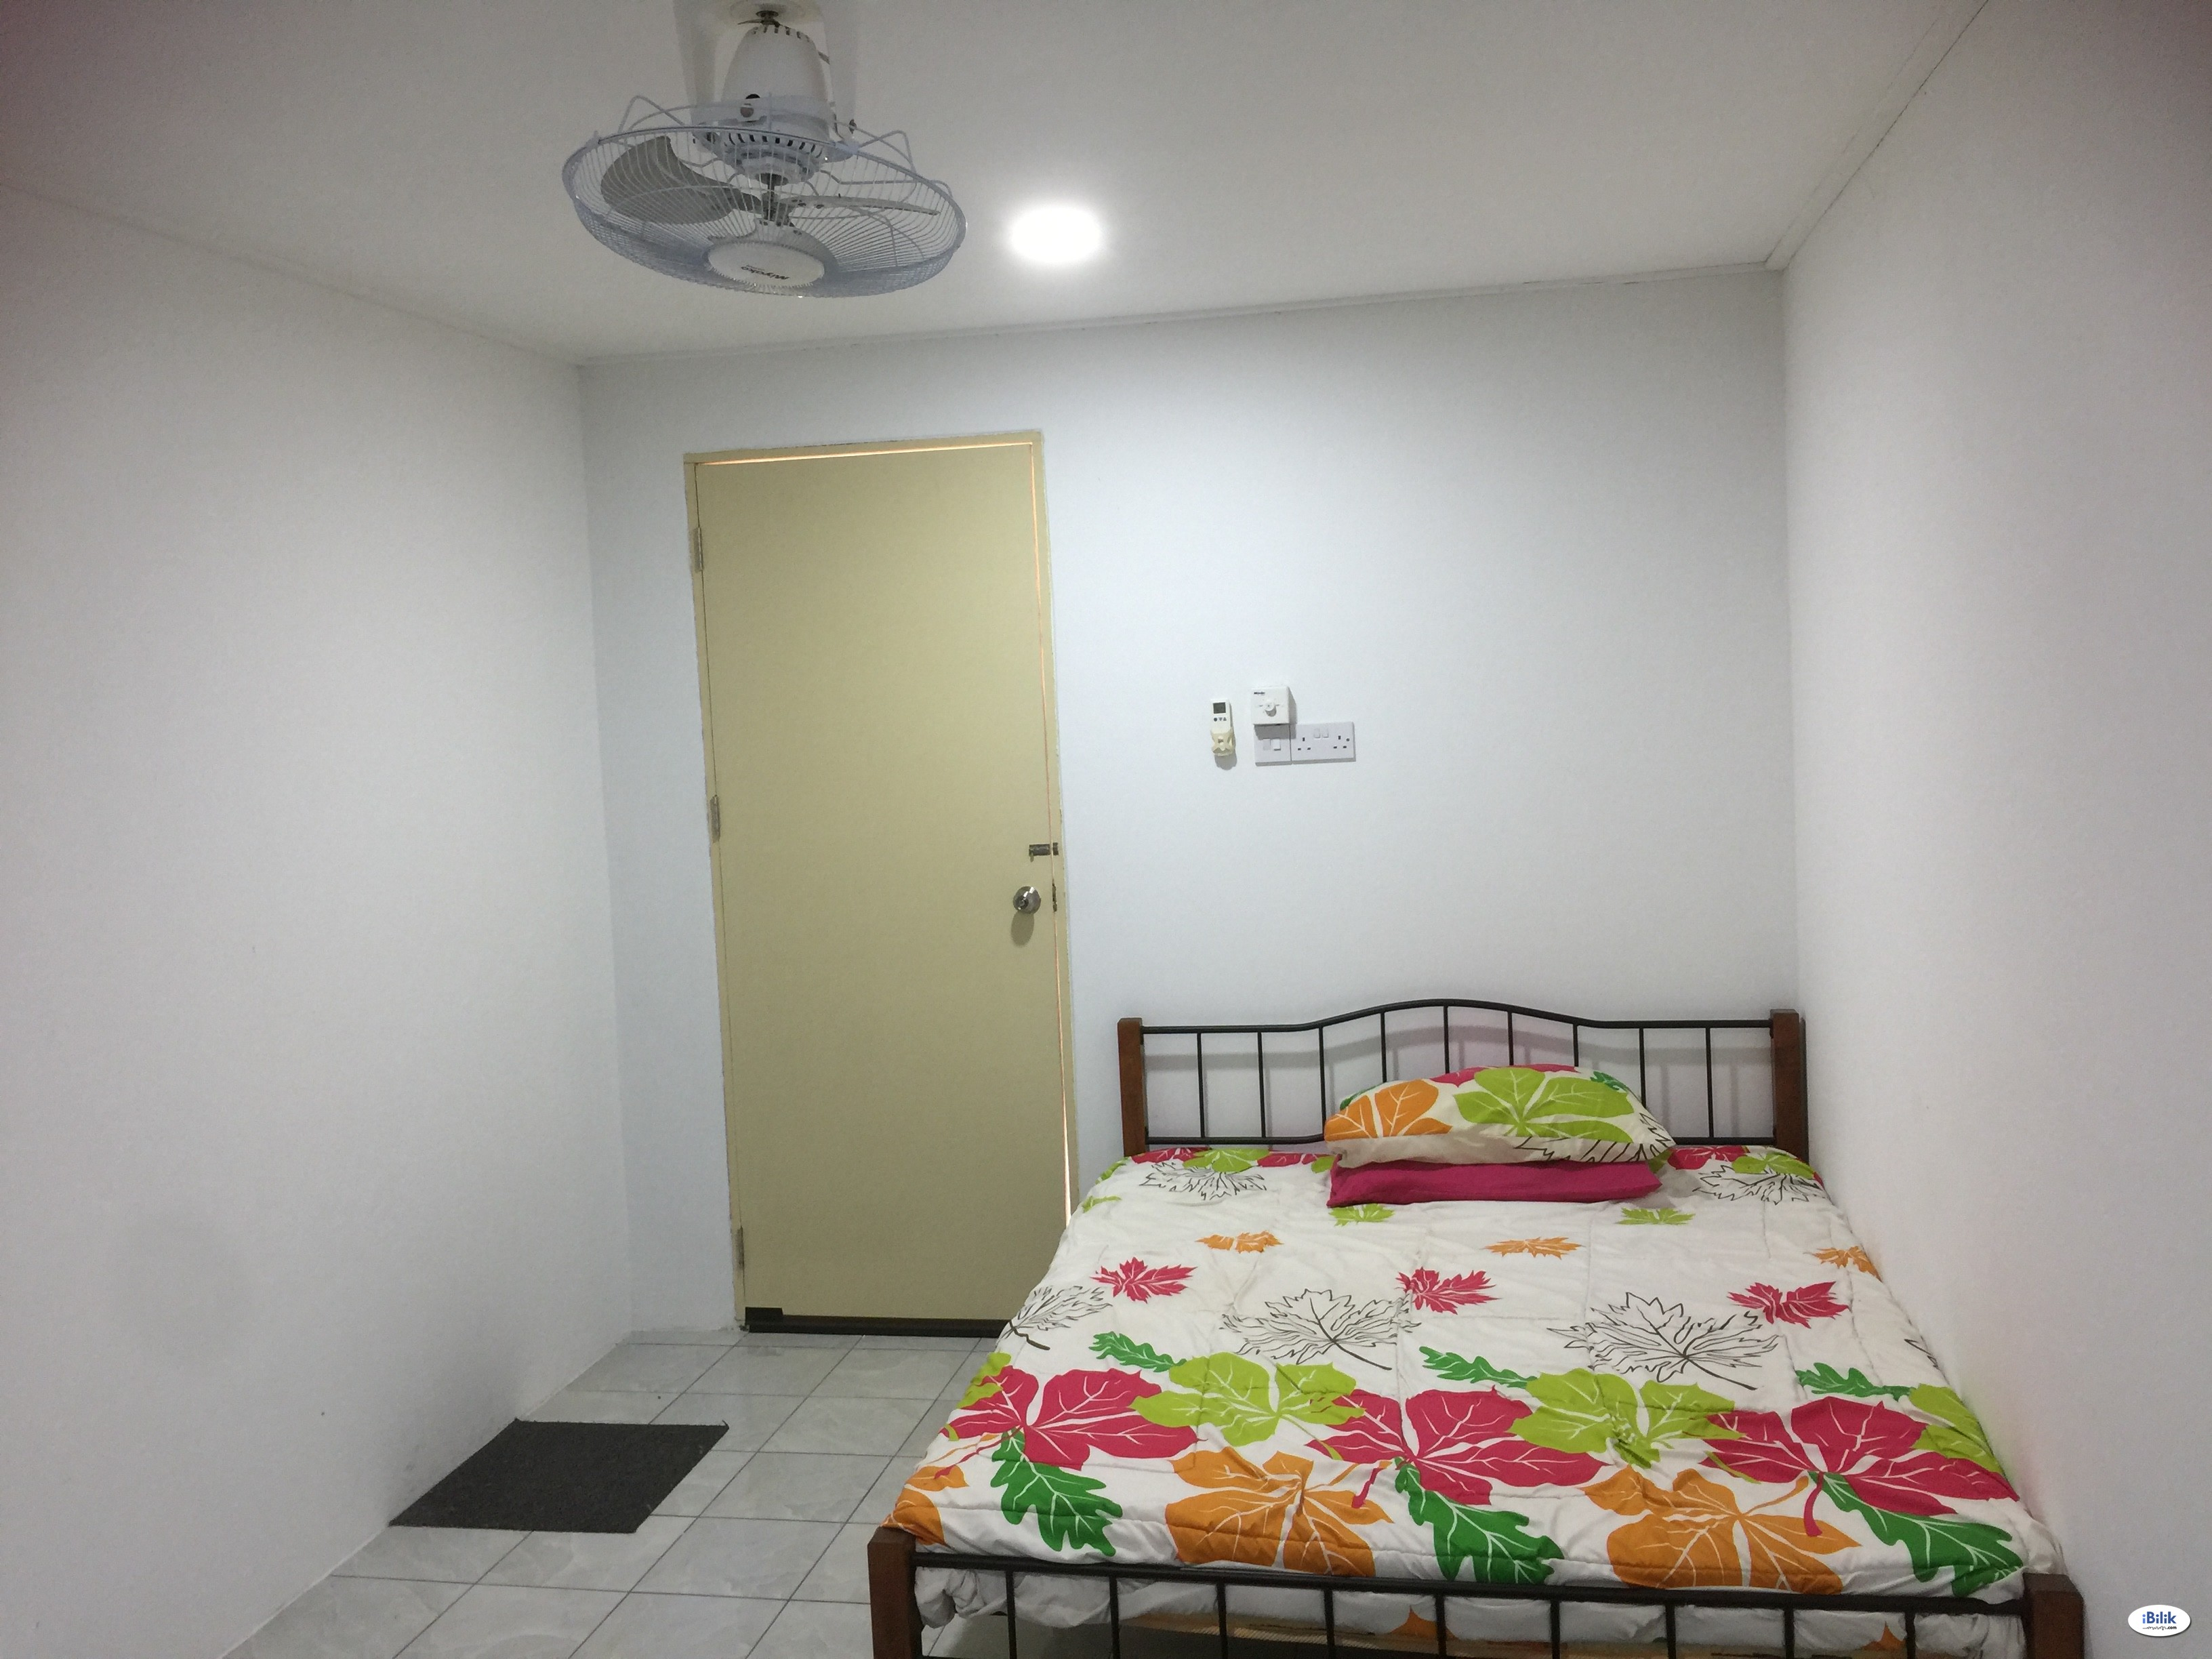 Middle Room at Jerudong, Brunei